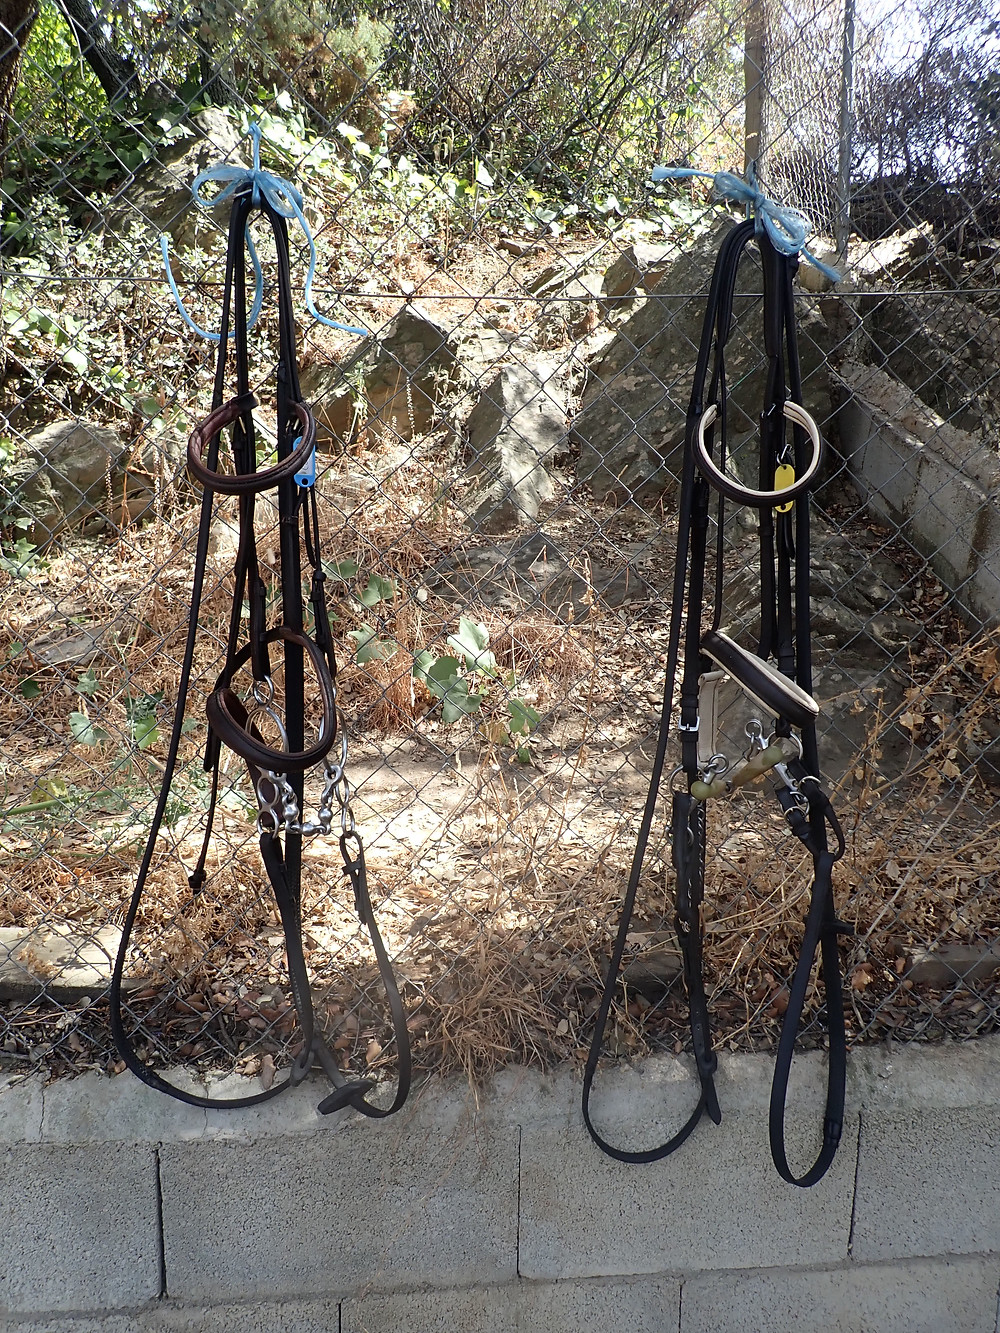 Two horse bridles, hanging up, after I cleaned them